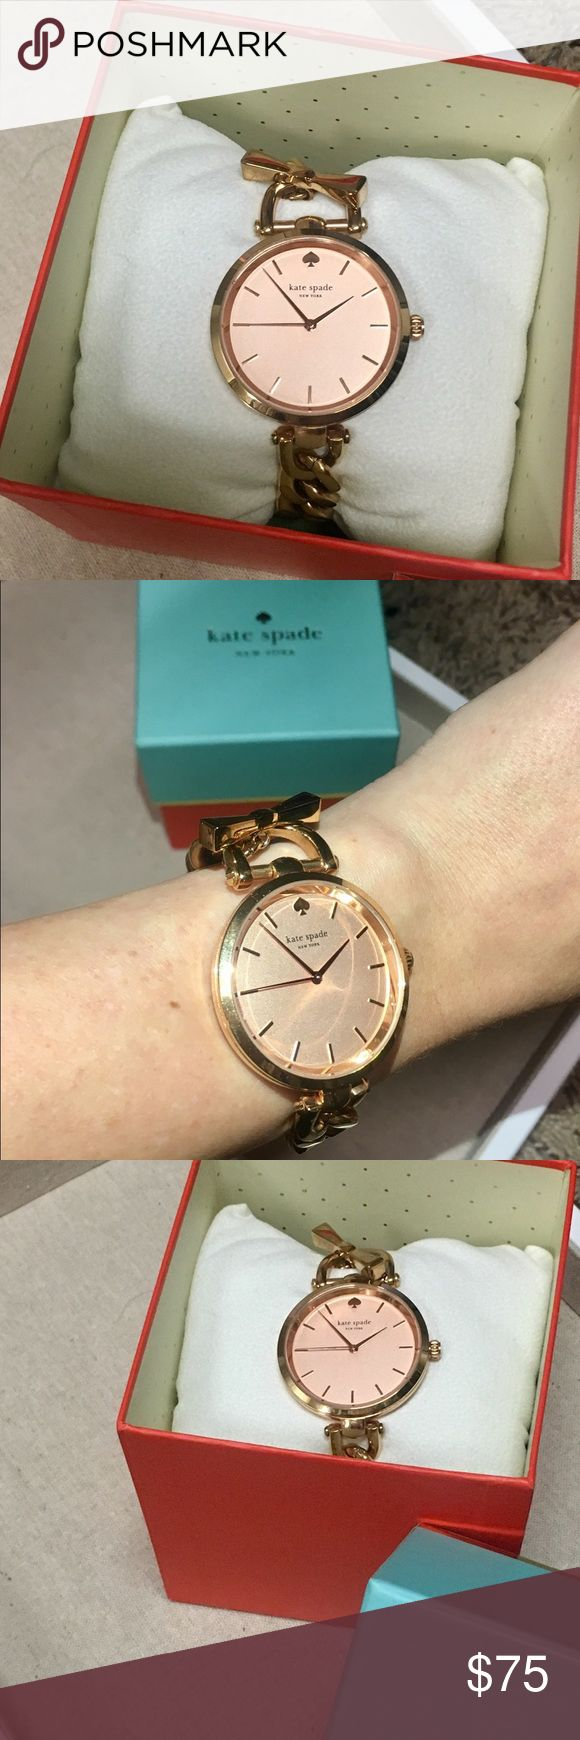 Kate Spade Rose Gold watch! Kate Spade Rose Gold watch! Only worn a few times, in great condition with box! kate spade Accessories Watches